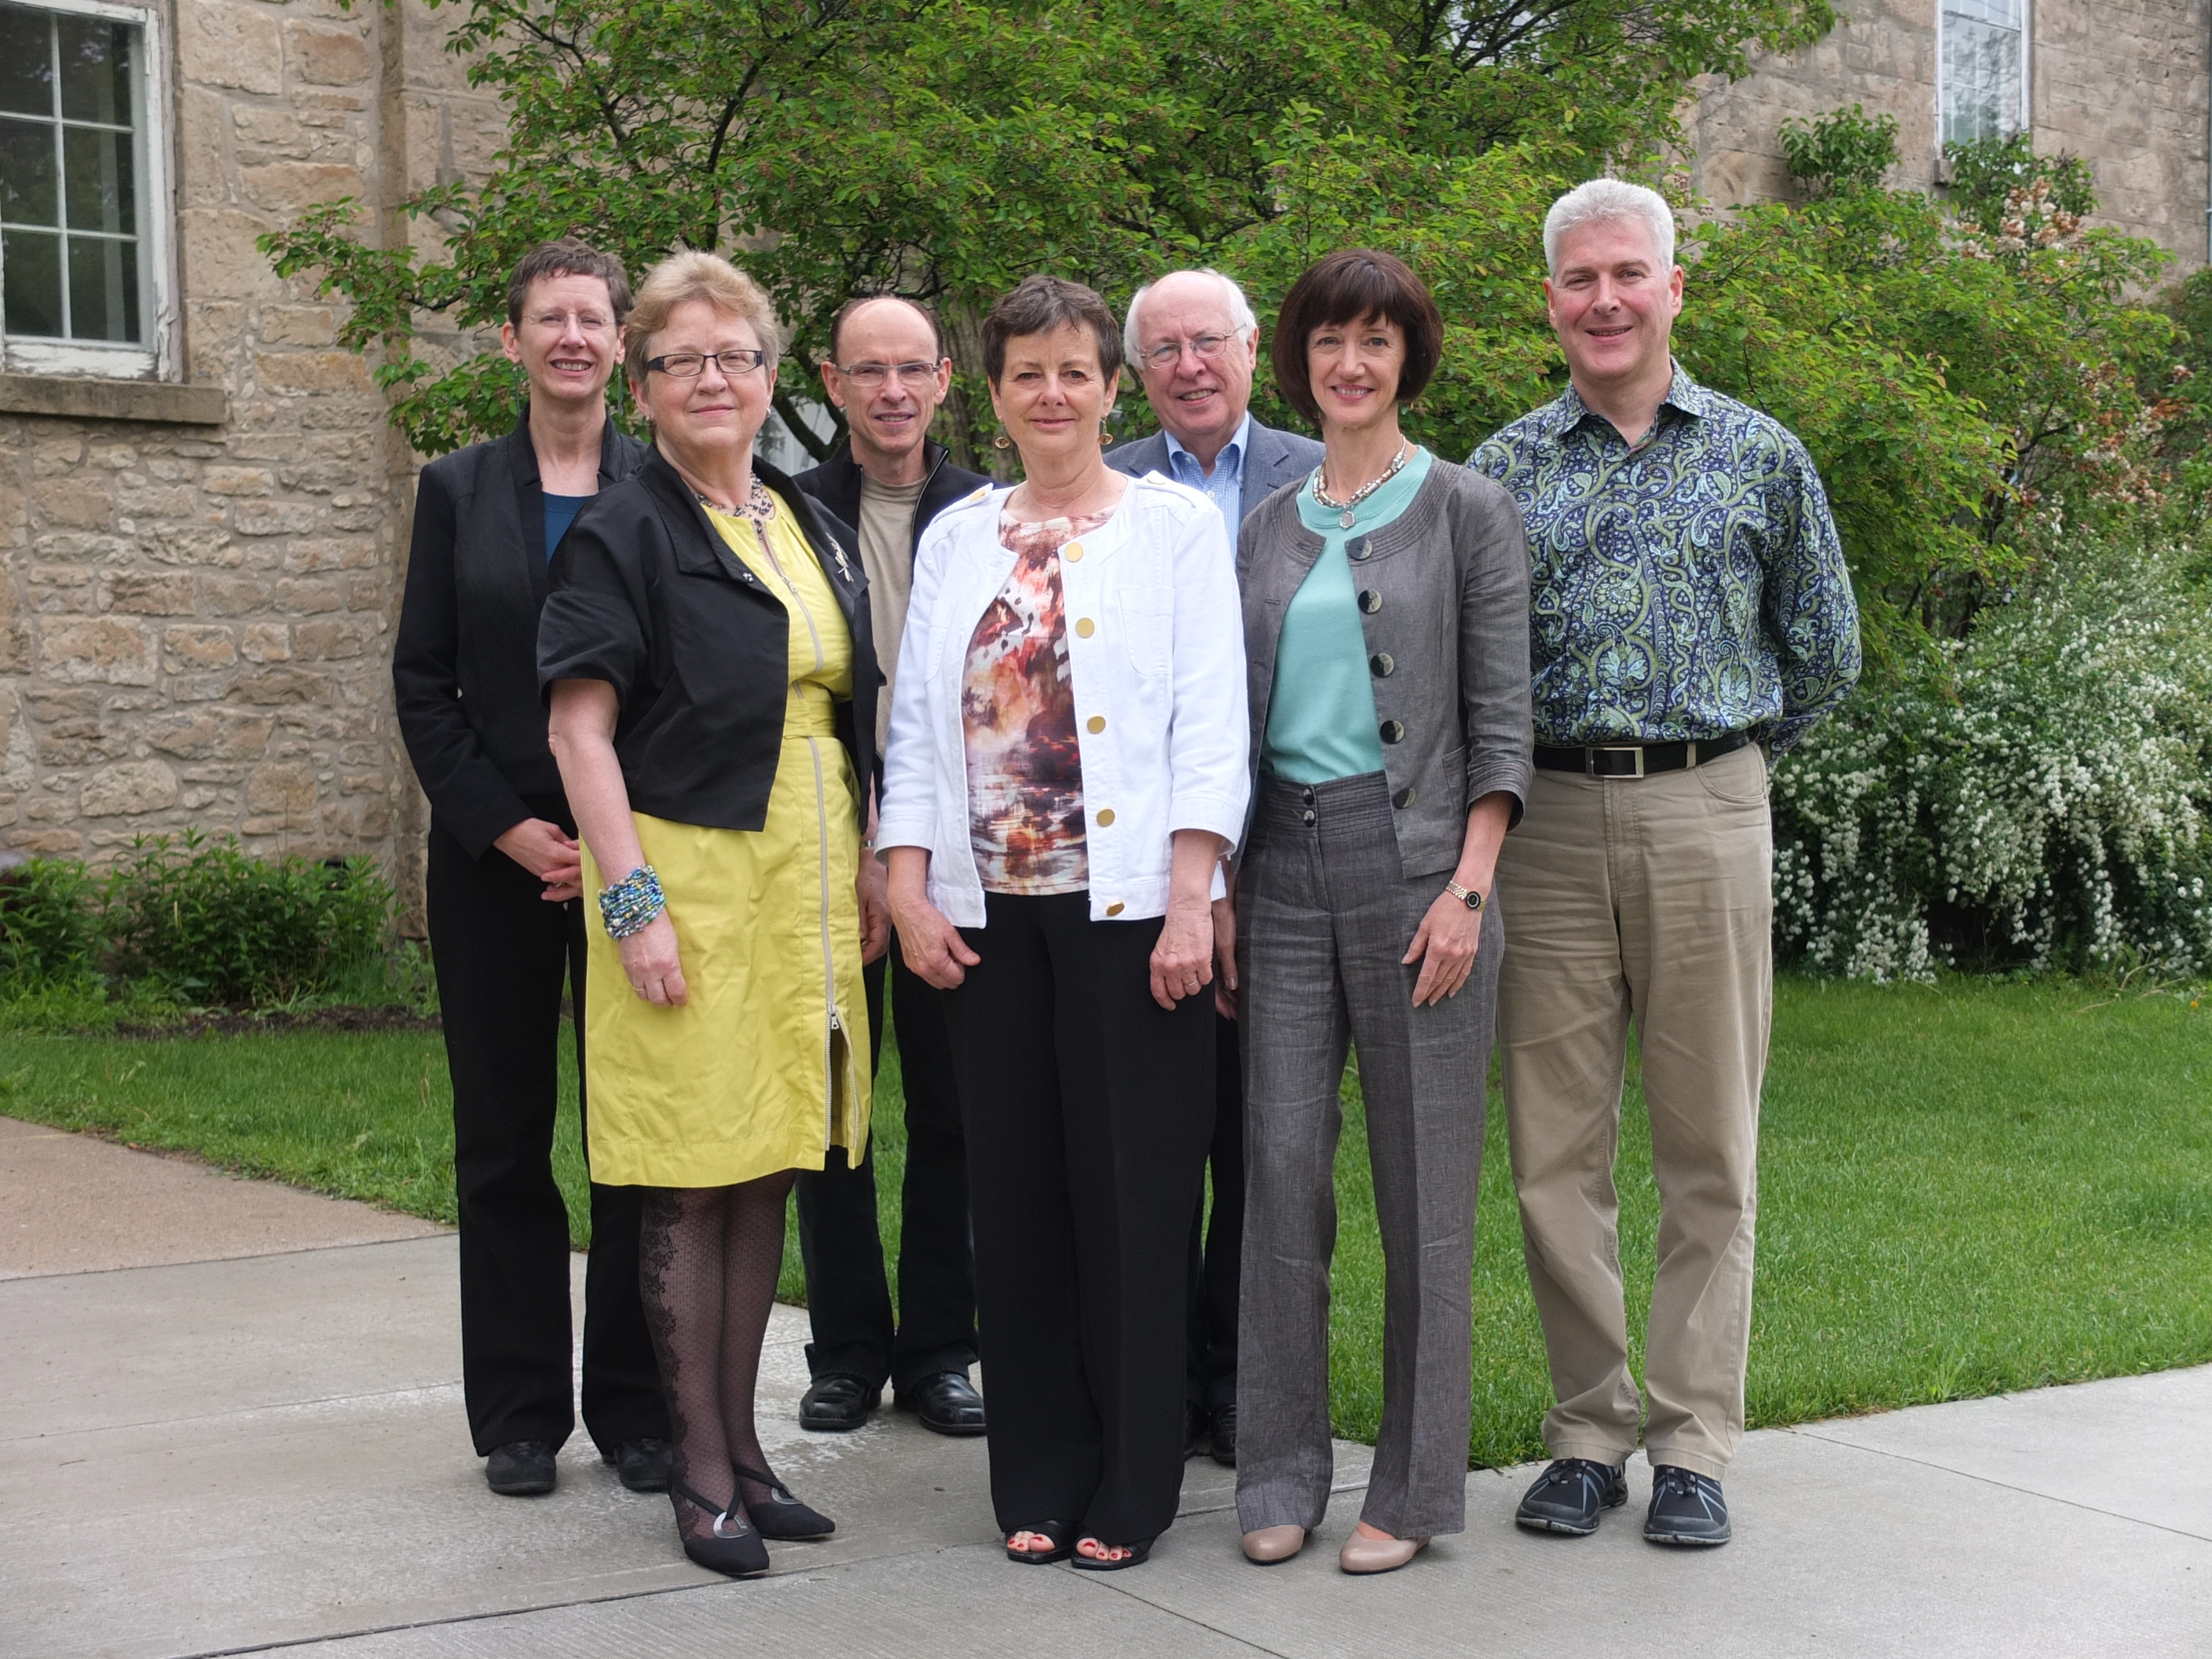 Musagetes Board and Founders standing in front of stone building